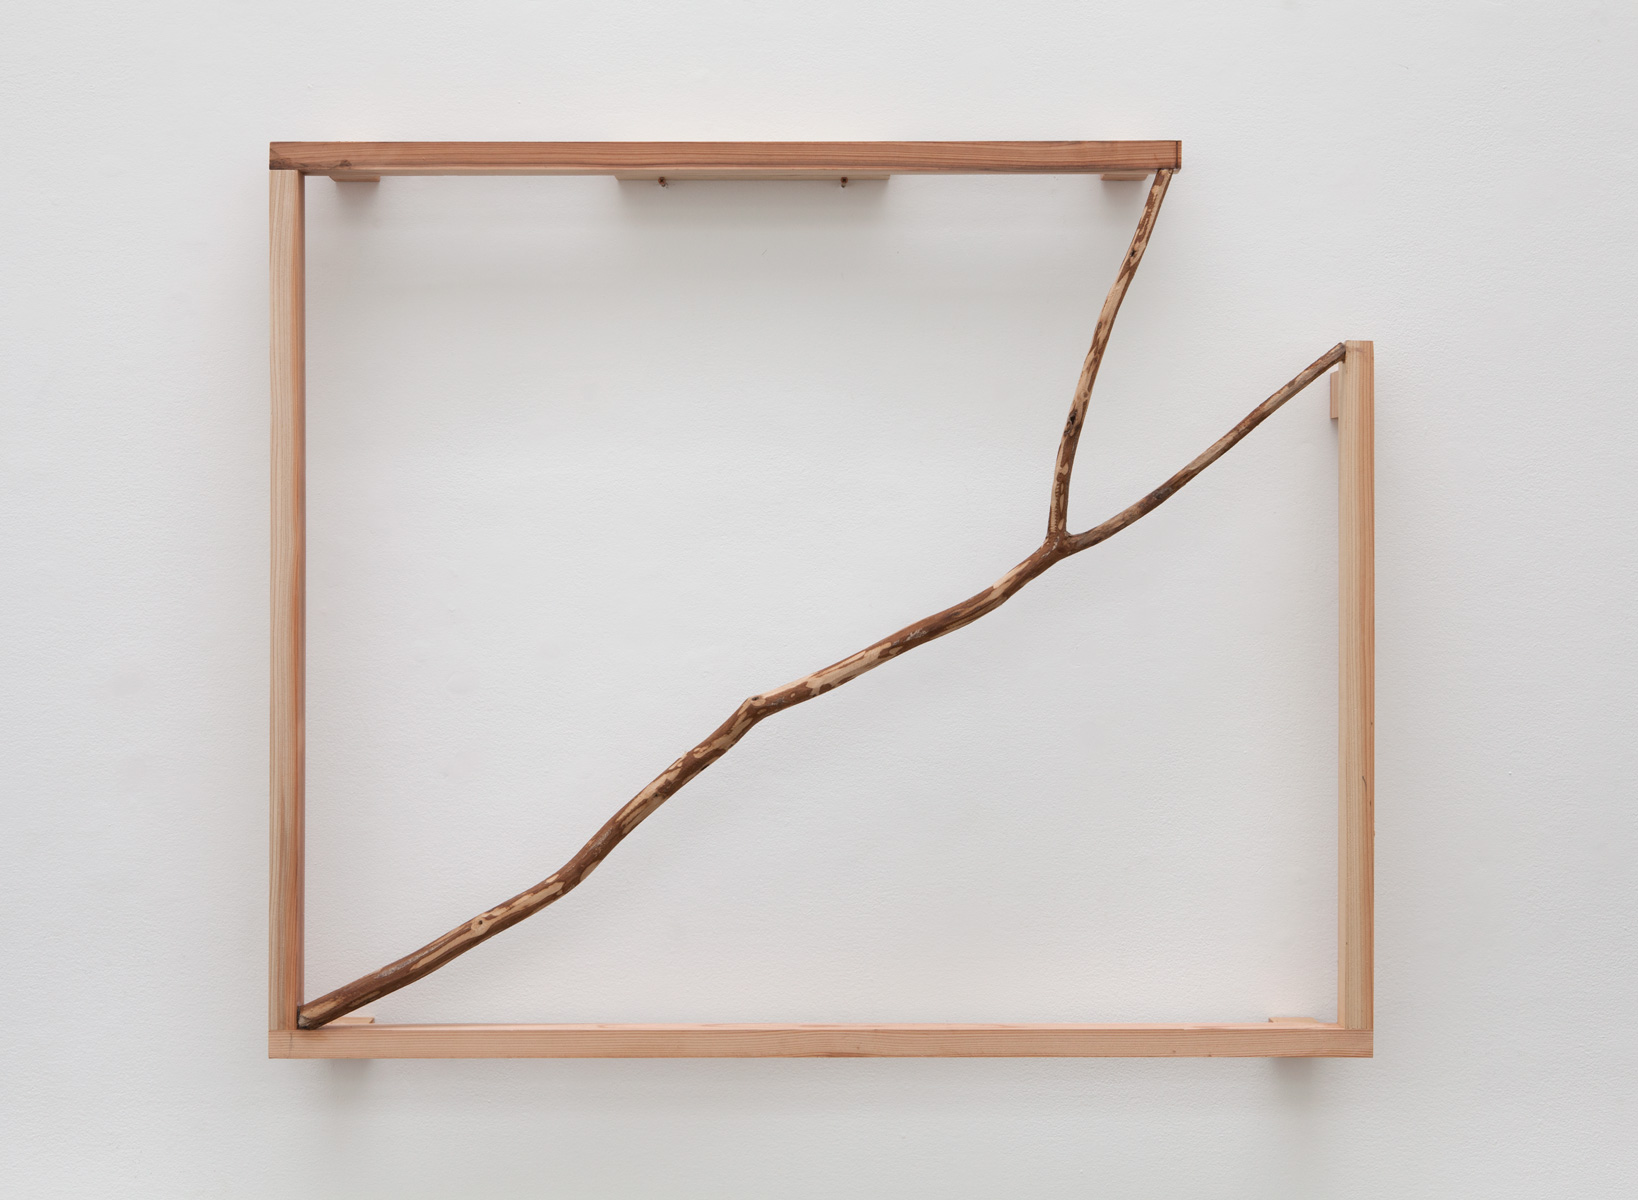 Spatial Opening , 1990-2015 空開 ( Kūkai ) Wood, branch 38 1/2 x 40 1/4 x 4 3/4 inches 97.8 x 102.2 x 12.1 cm